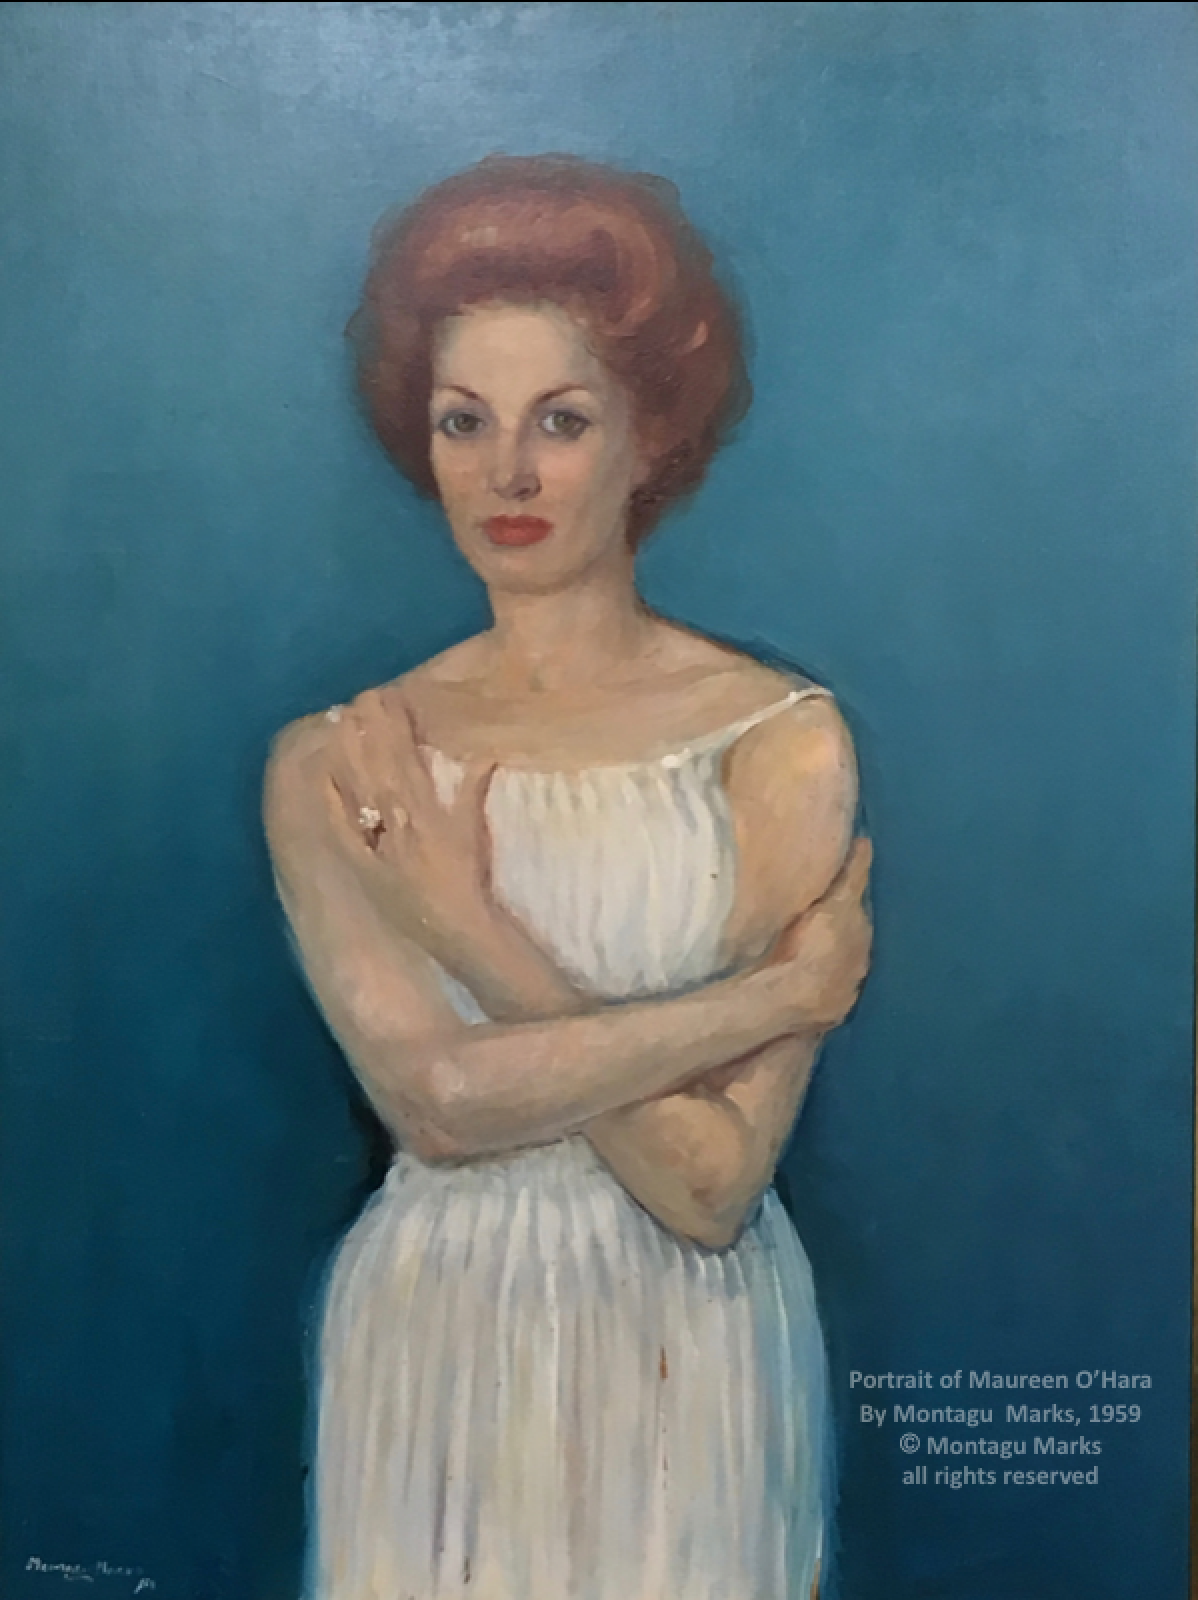 A Portrait of Maureen O'Hara by montagu marks 1959. Copyright Montagu Marks' Estate All rights reserved. private collection.